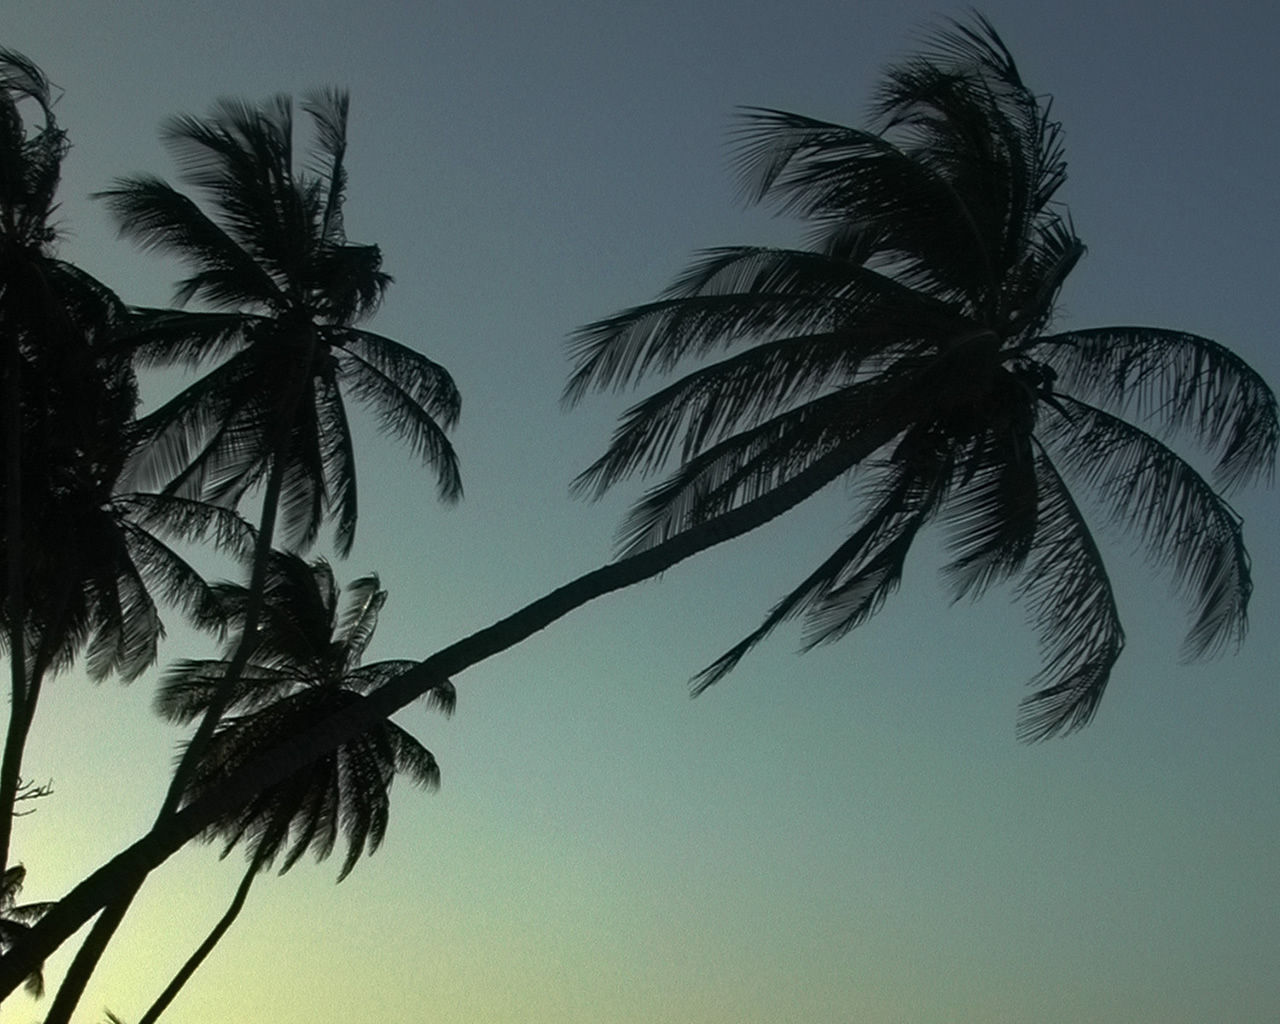 Palm trees leaning into the sky